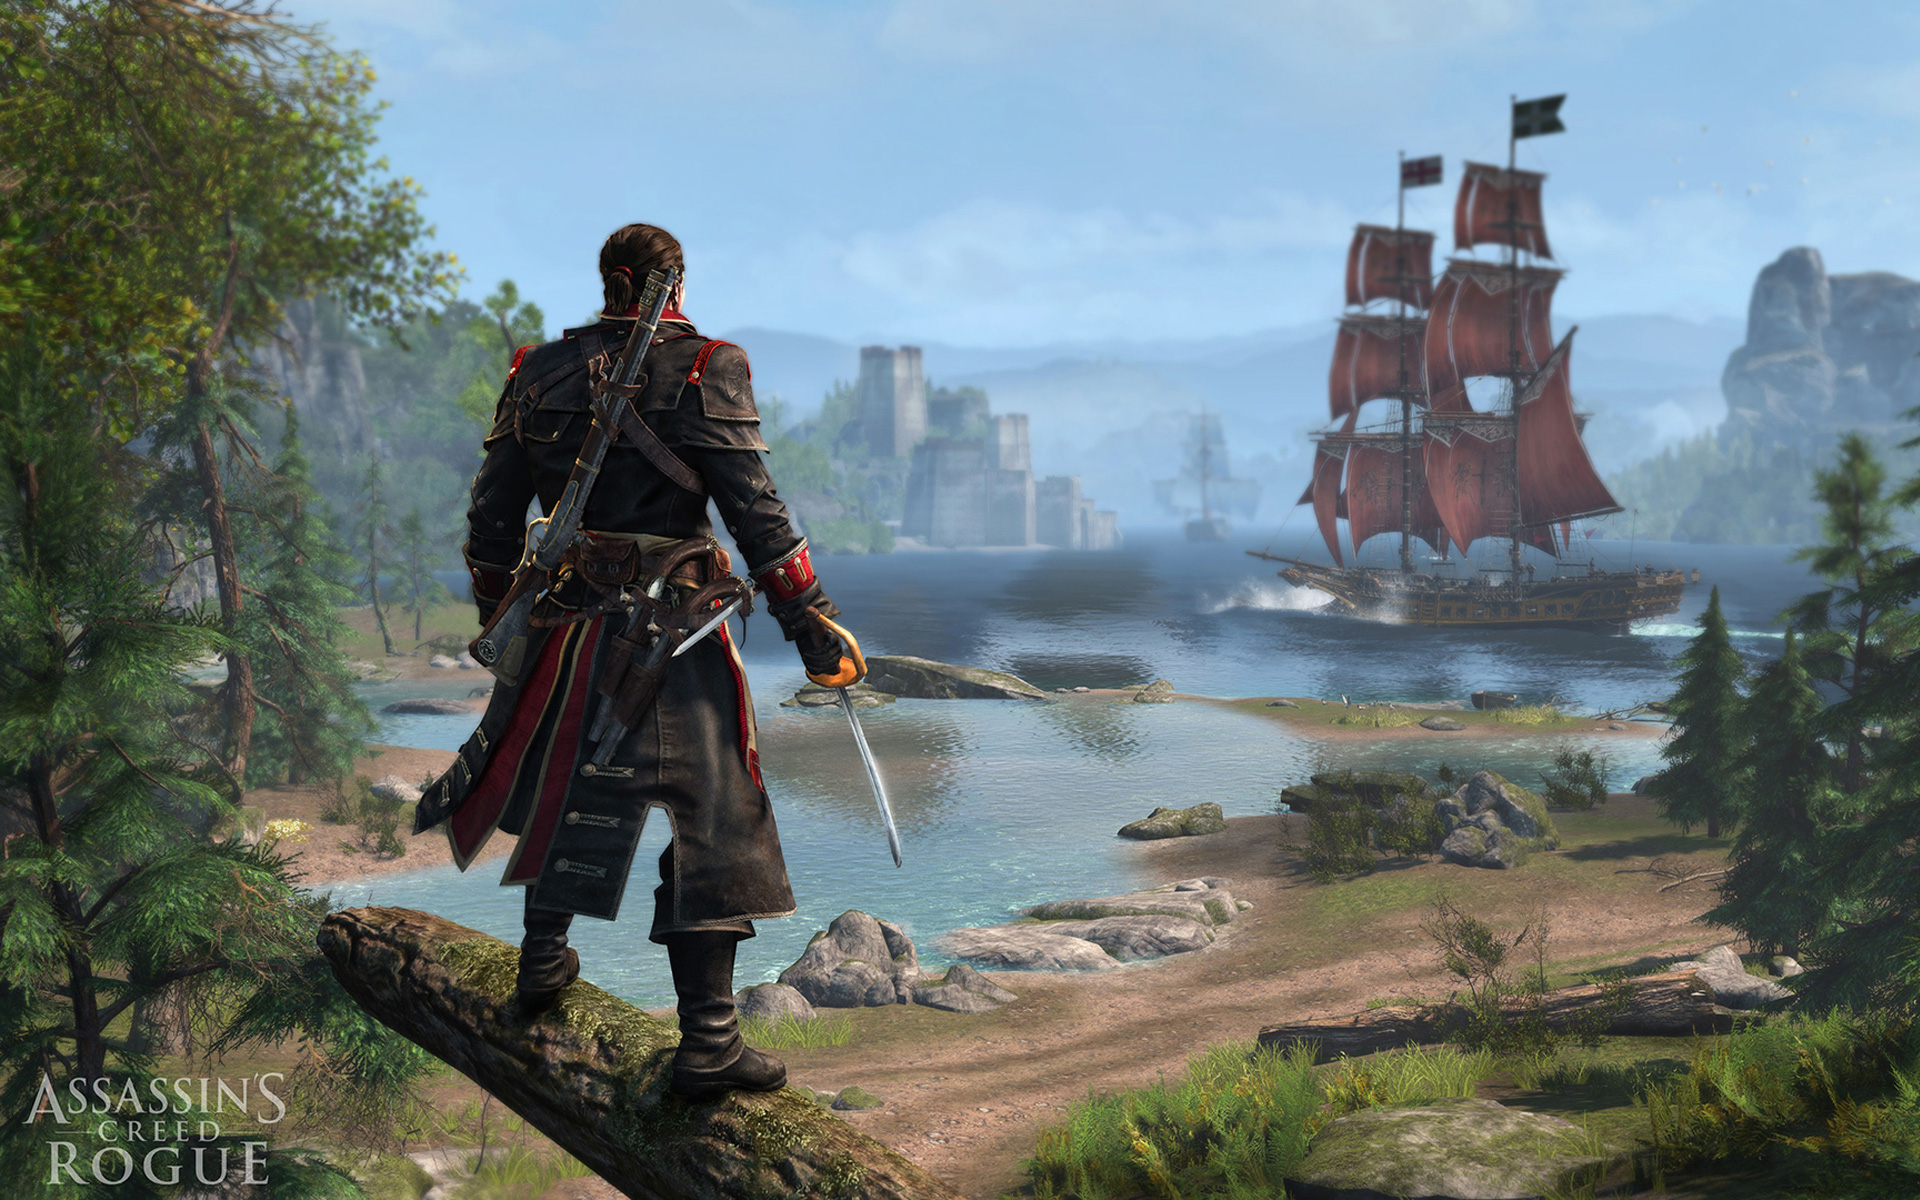 Assassin's Creed: Rogue Wallpaper in 1920x1200